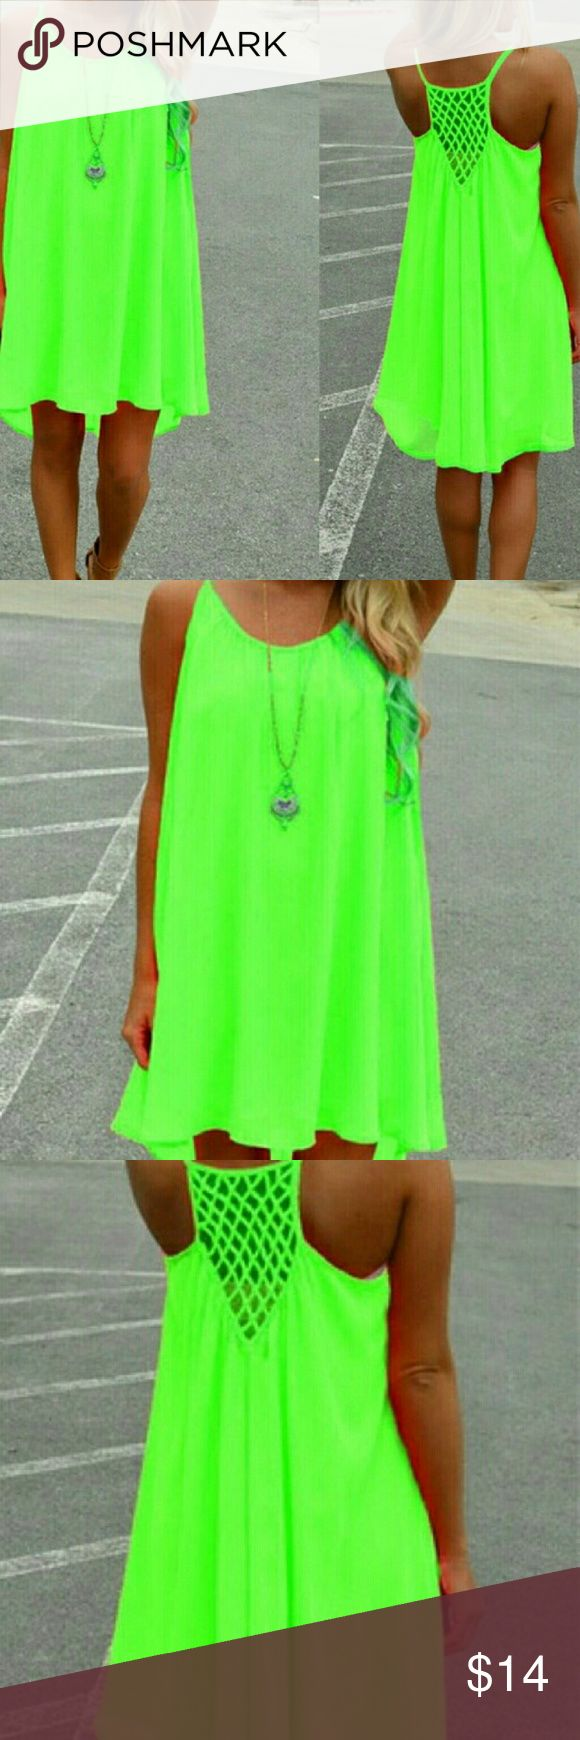 """☇☇SALE☇☇Neon Yellowish Green Summer Dress Great light weight summer dress with spaghetti straps. Dress is knee length. Necklace not included. 3X measurements are 46""""-48"""" and will stretch to 52"""".  Still in the package. NWOT Dresses High Low"""